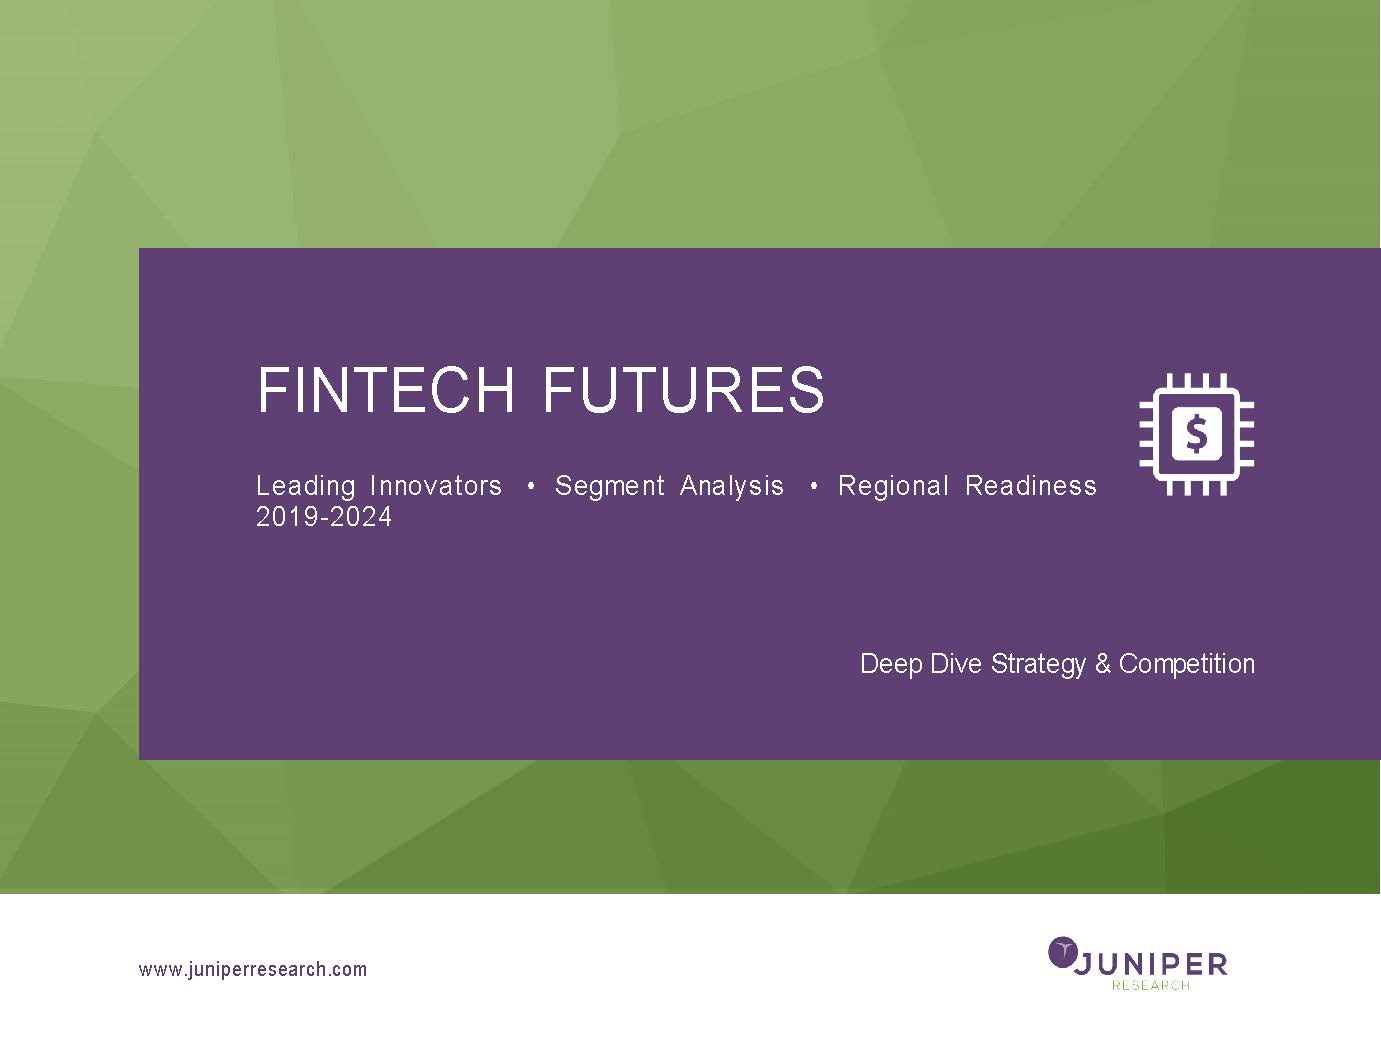 Fintech Futures - Deep Dive Strategy & Competition 2019-2024